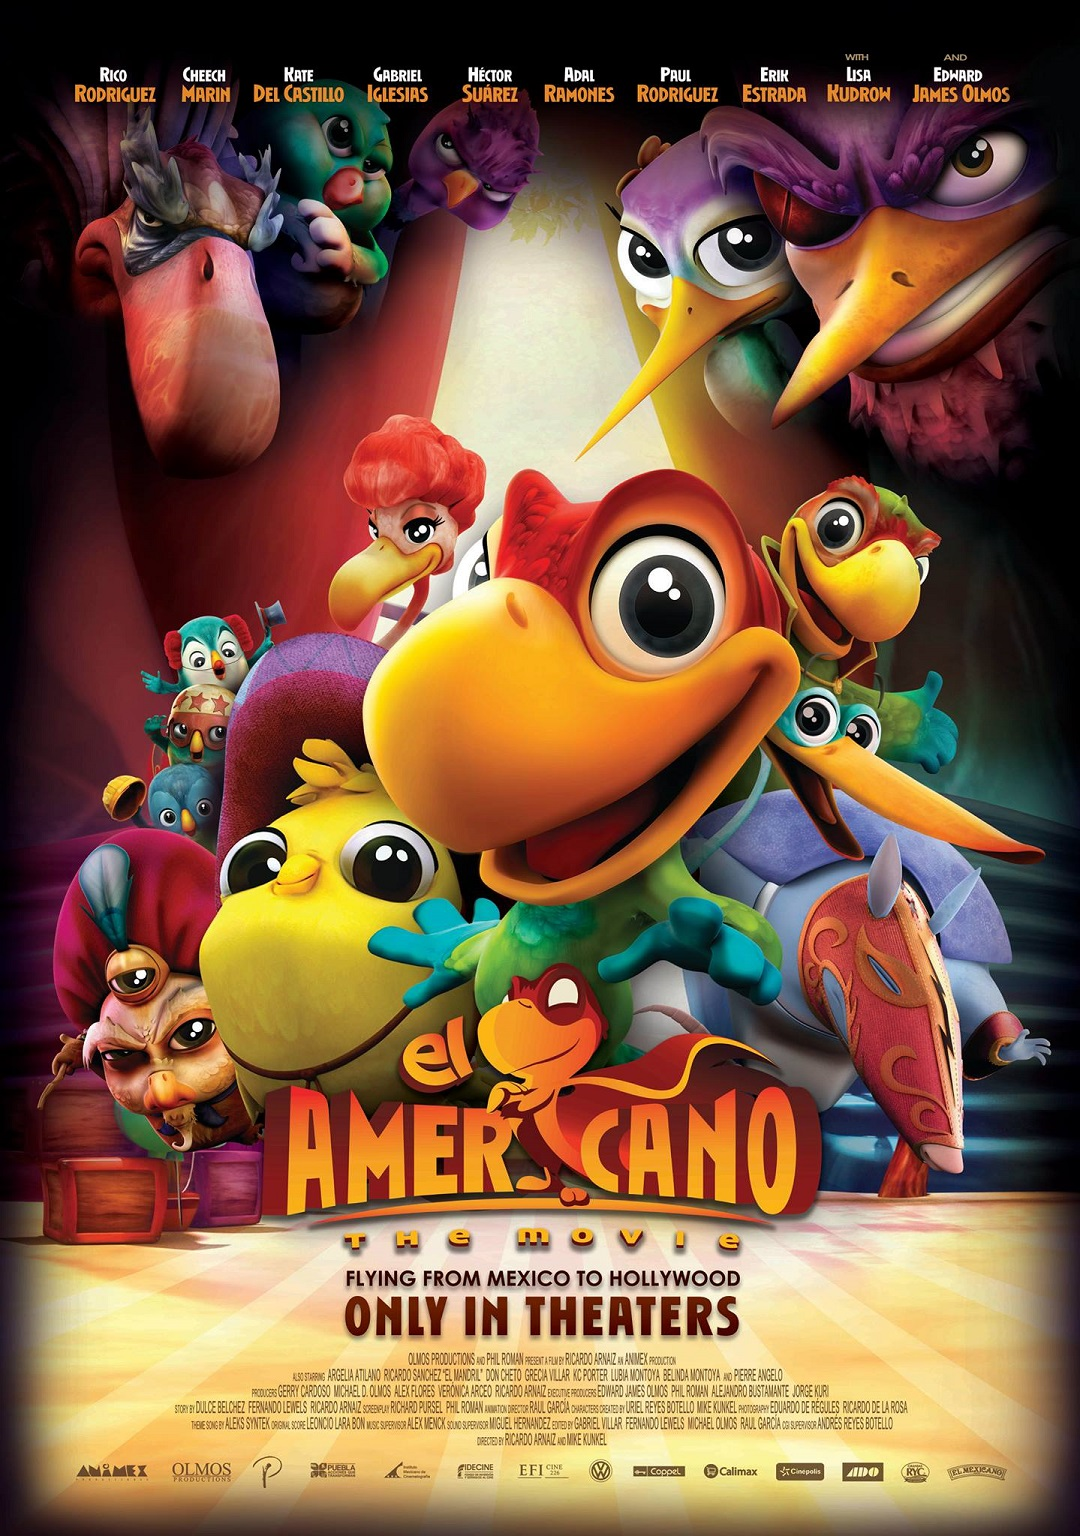 El Americano The Movie - POSTER